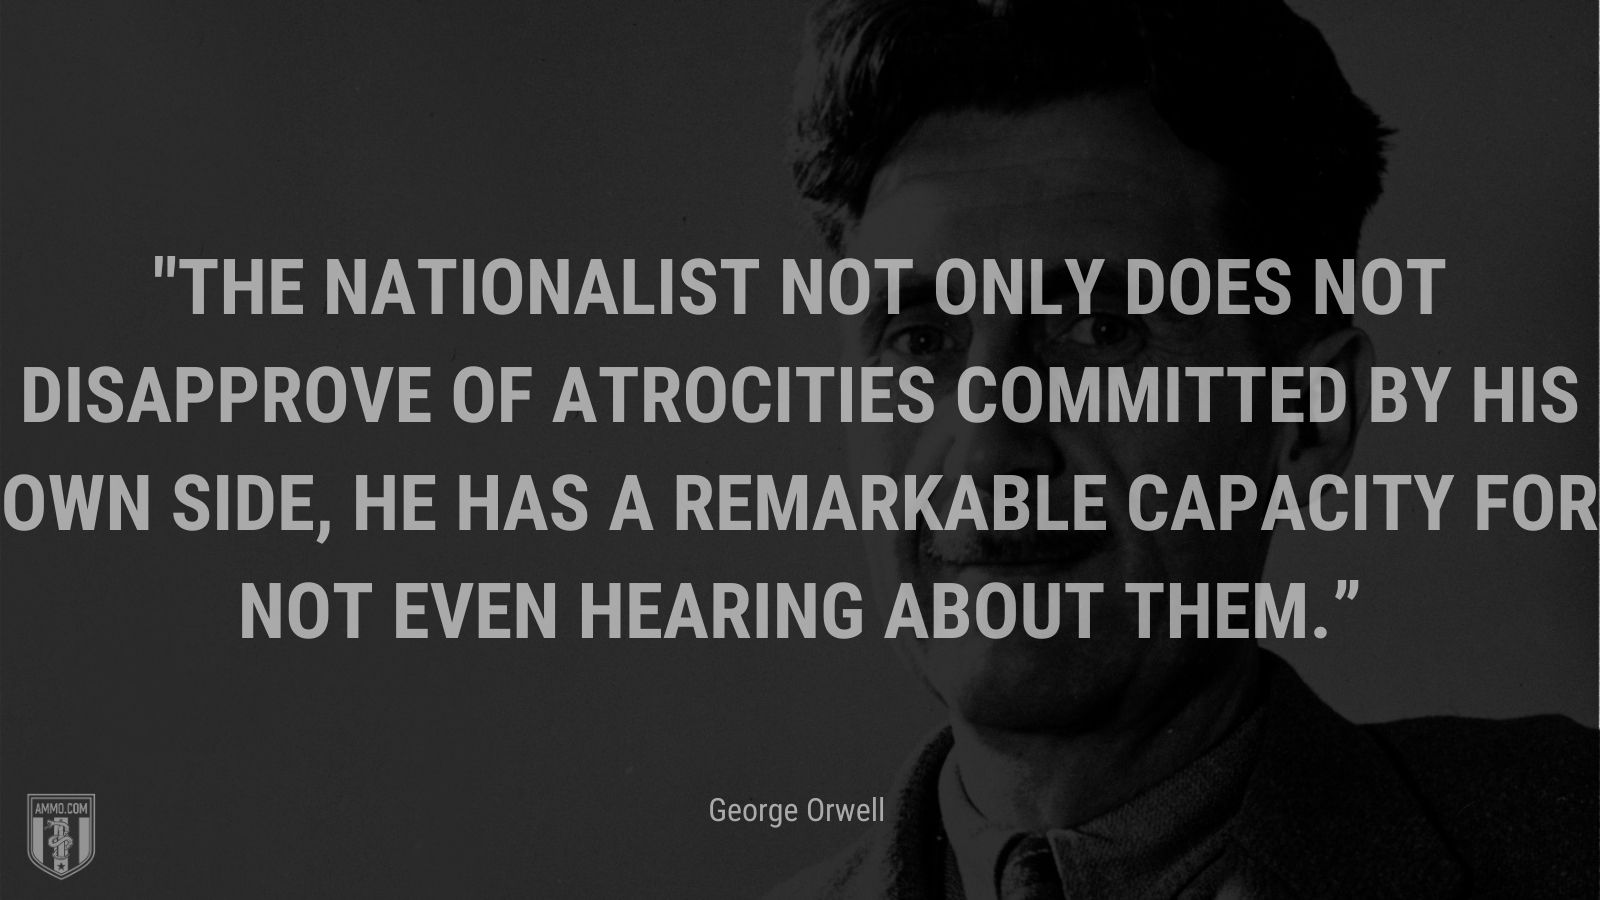 """""""The nationalist not only does not disapprove of atrocities committed by his own side, he has a remarkable capacity for not even hearing about them."""" - George Orwell"""